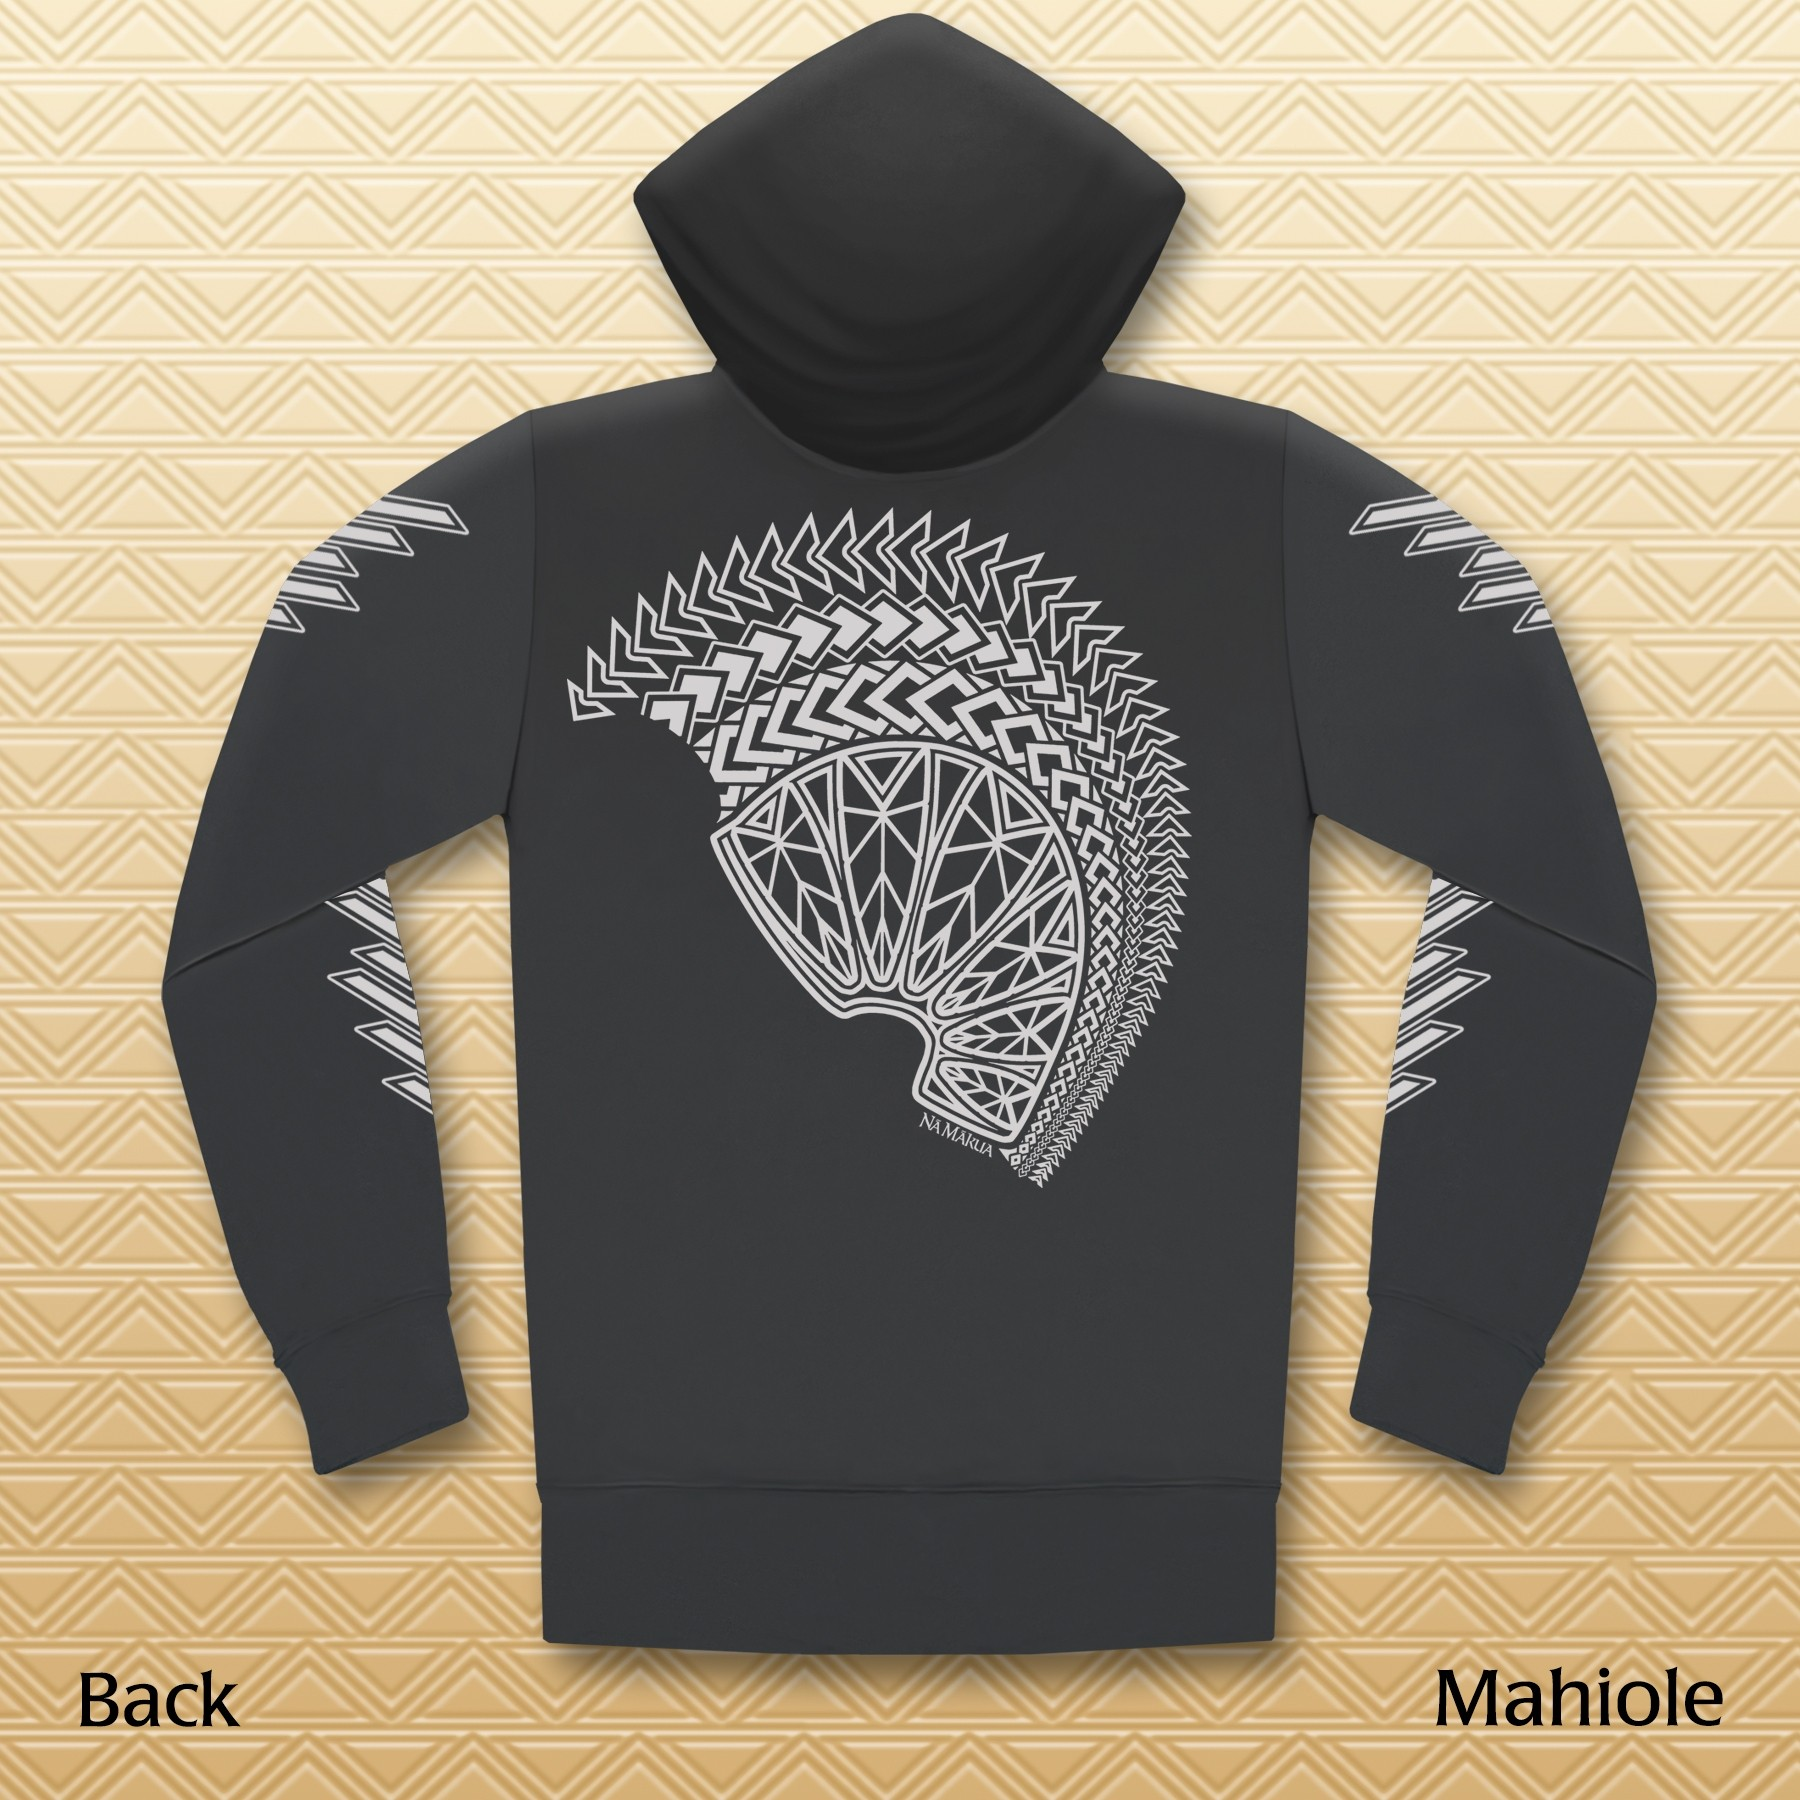 Mahiole Zipper Hooded Jacket